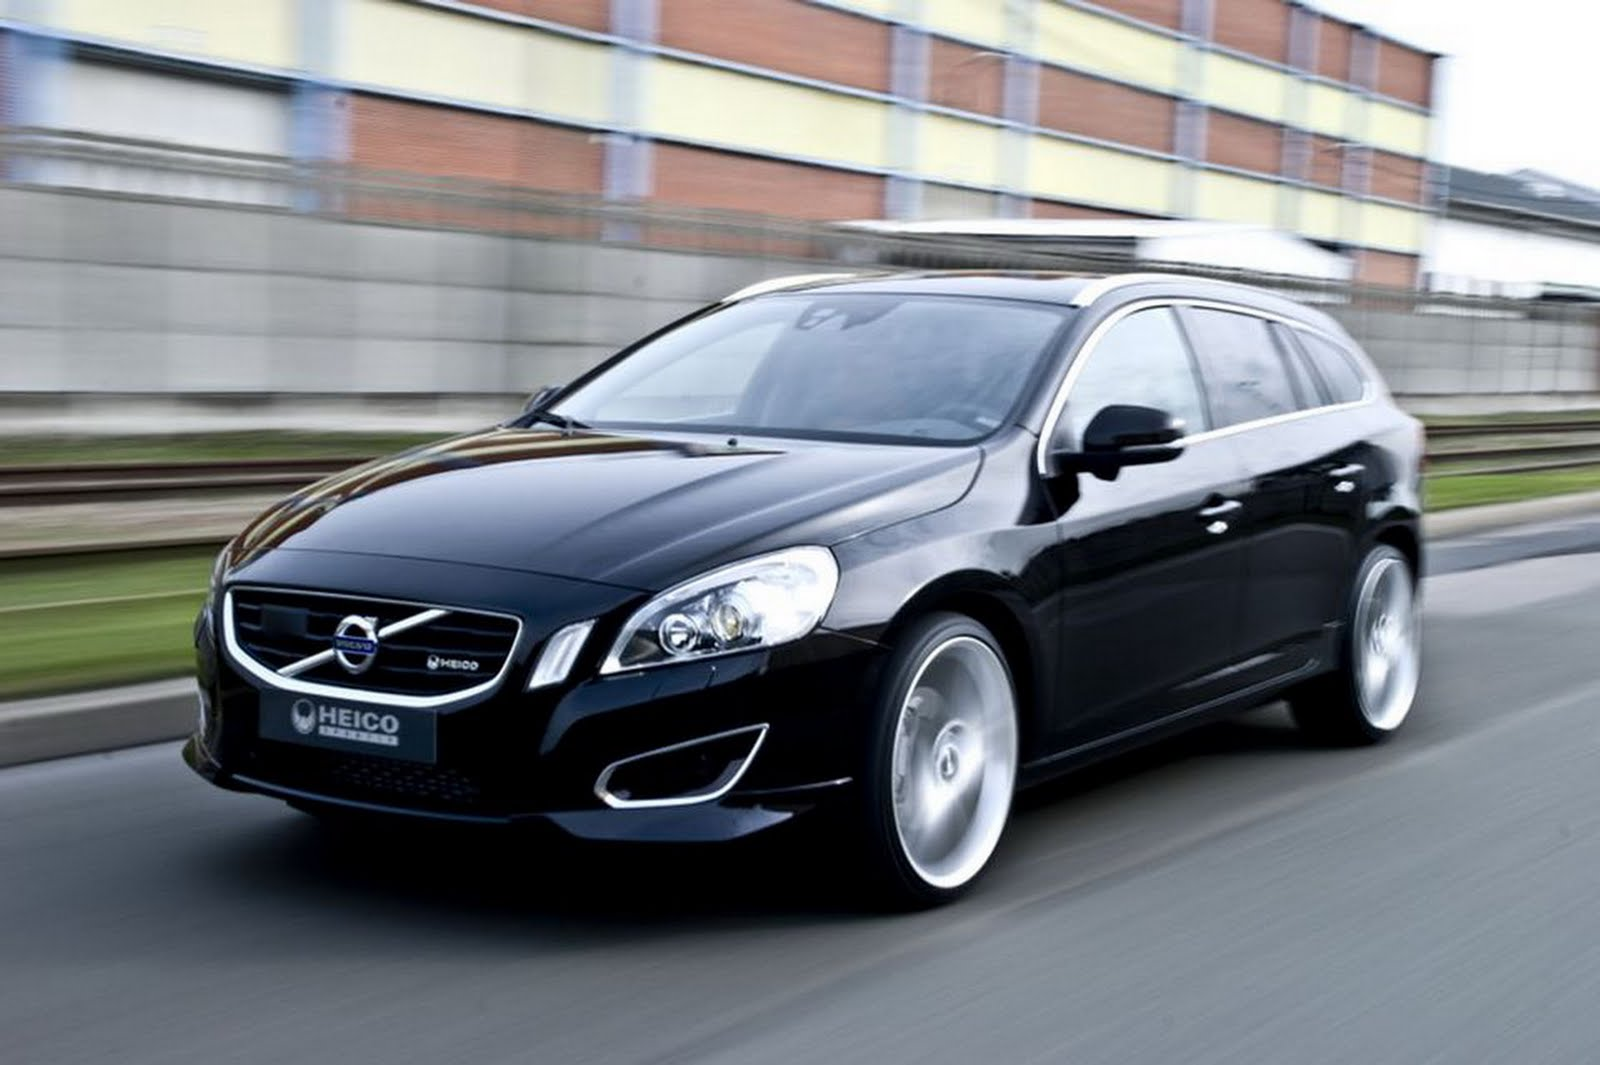 amazing automobile volvo v60 2011 stills wallpapers. Black Bedroom Furniture Sets. Home Design Ideas